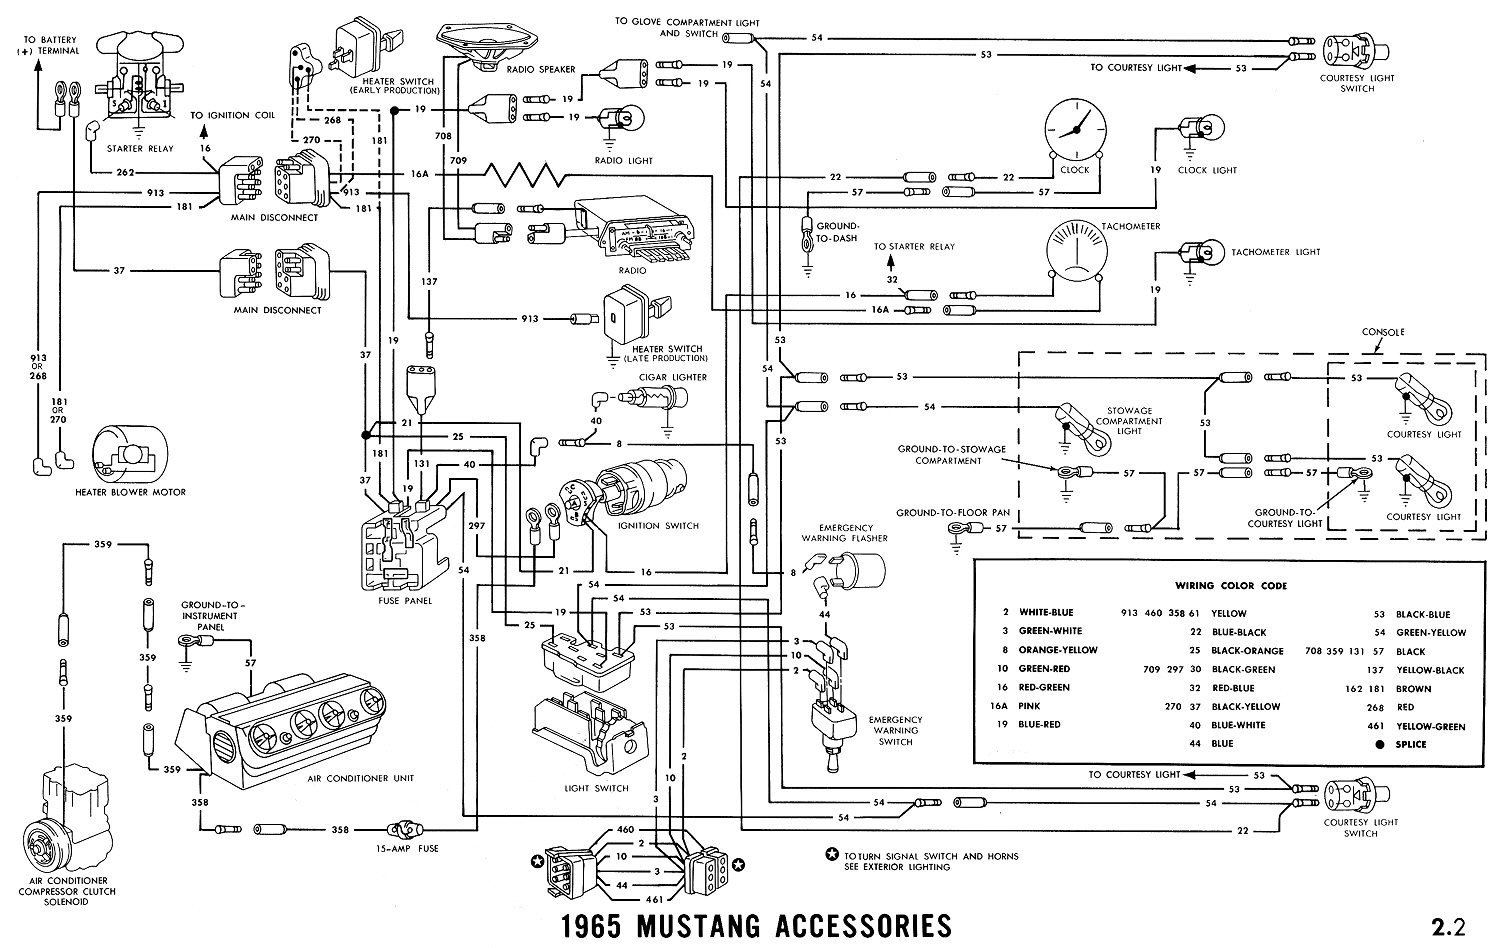 1965i 1965 mustang wiring diagram 1965 lincoln wiring diagram \u2022 wiring 2005 ford mustang instrument cluster wiring diagram at virtualis.co